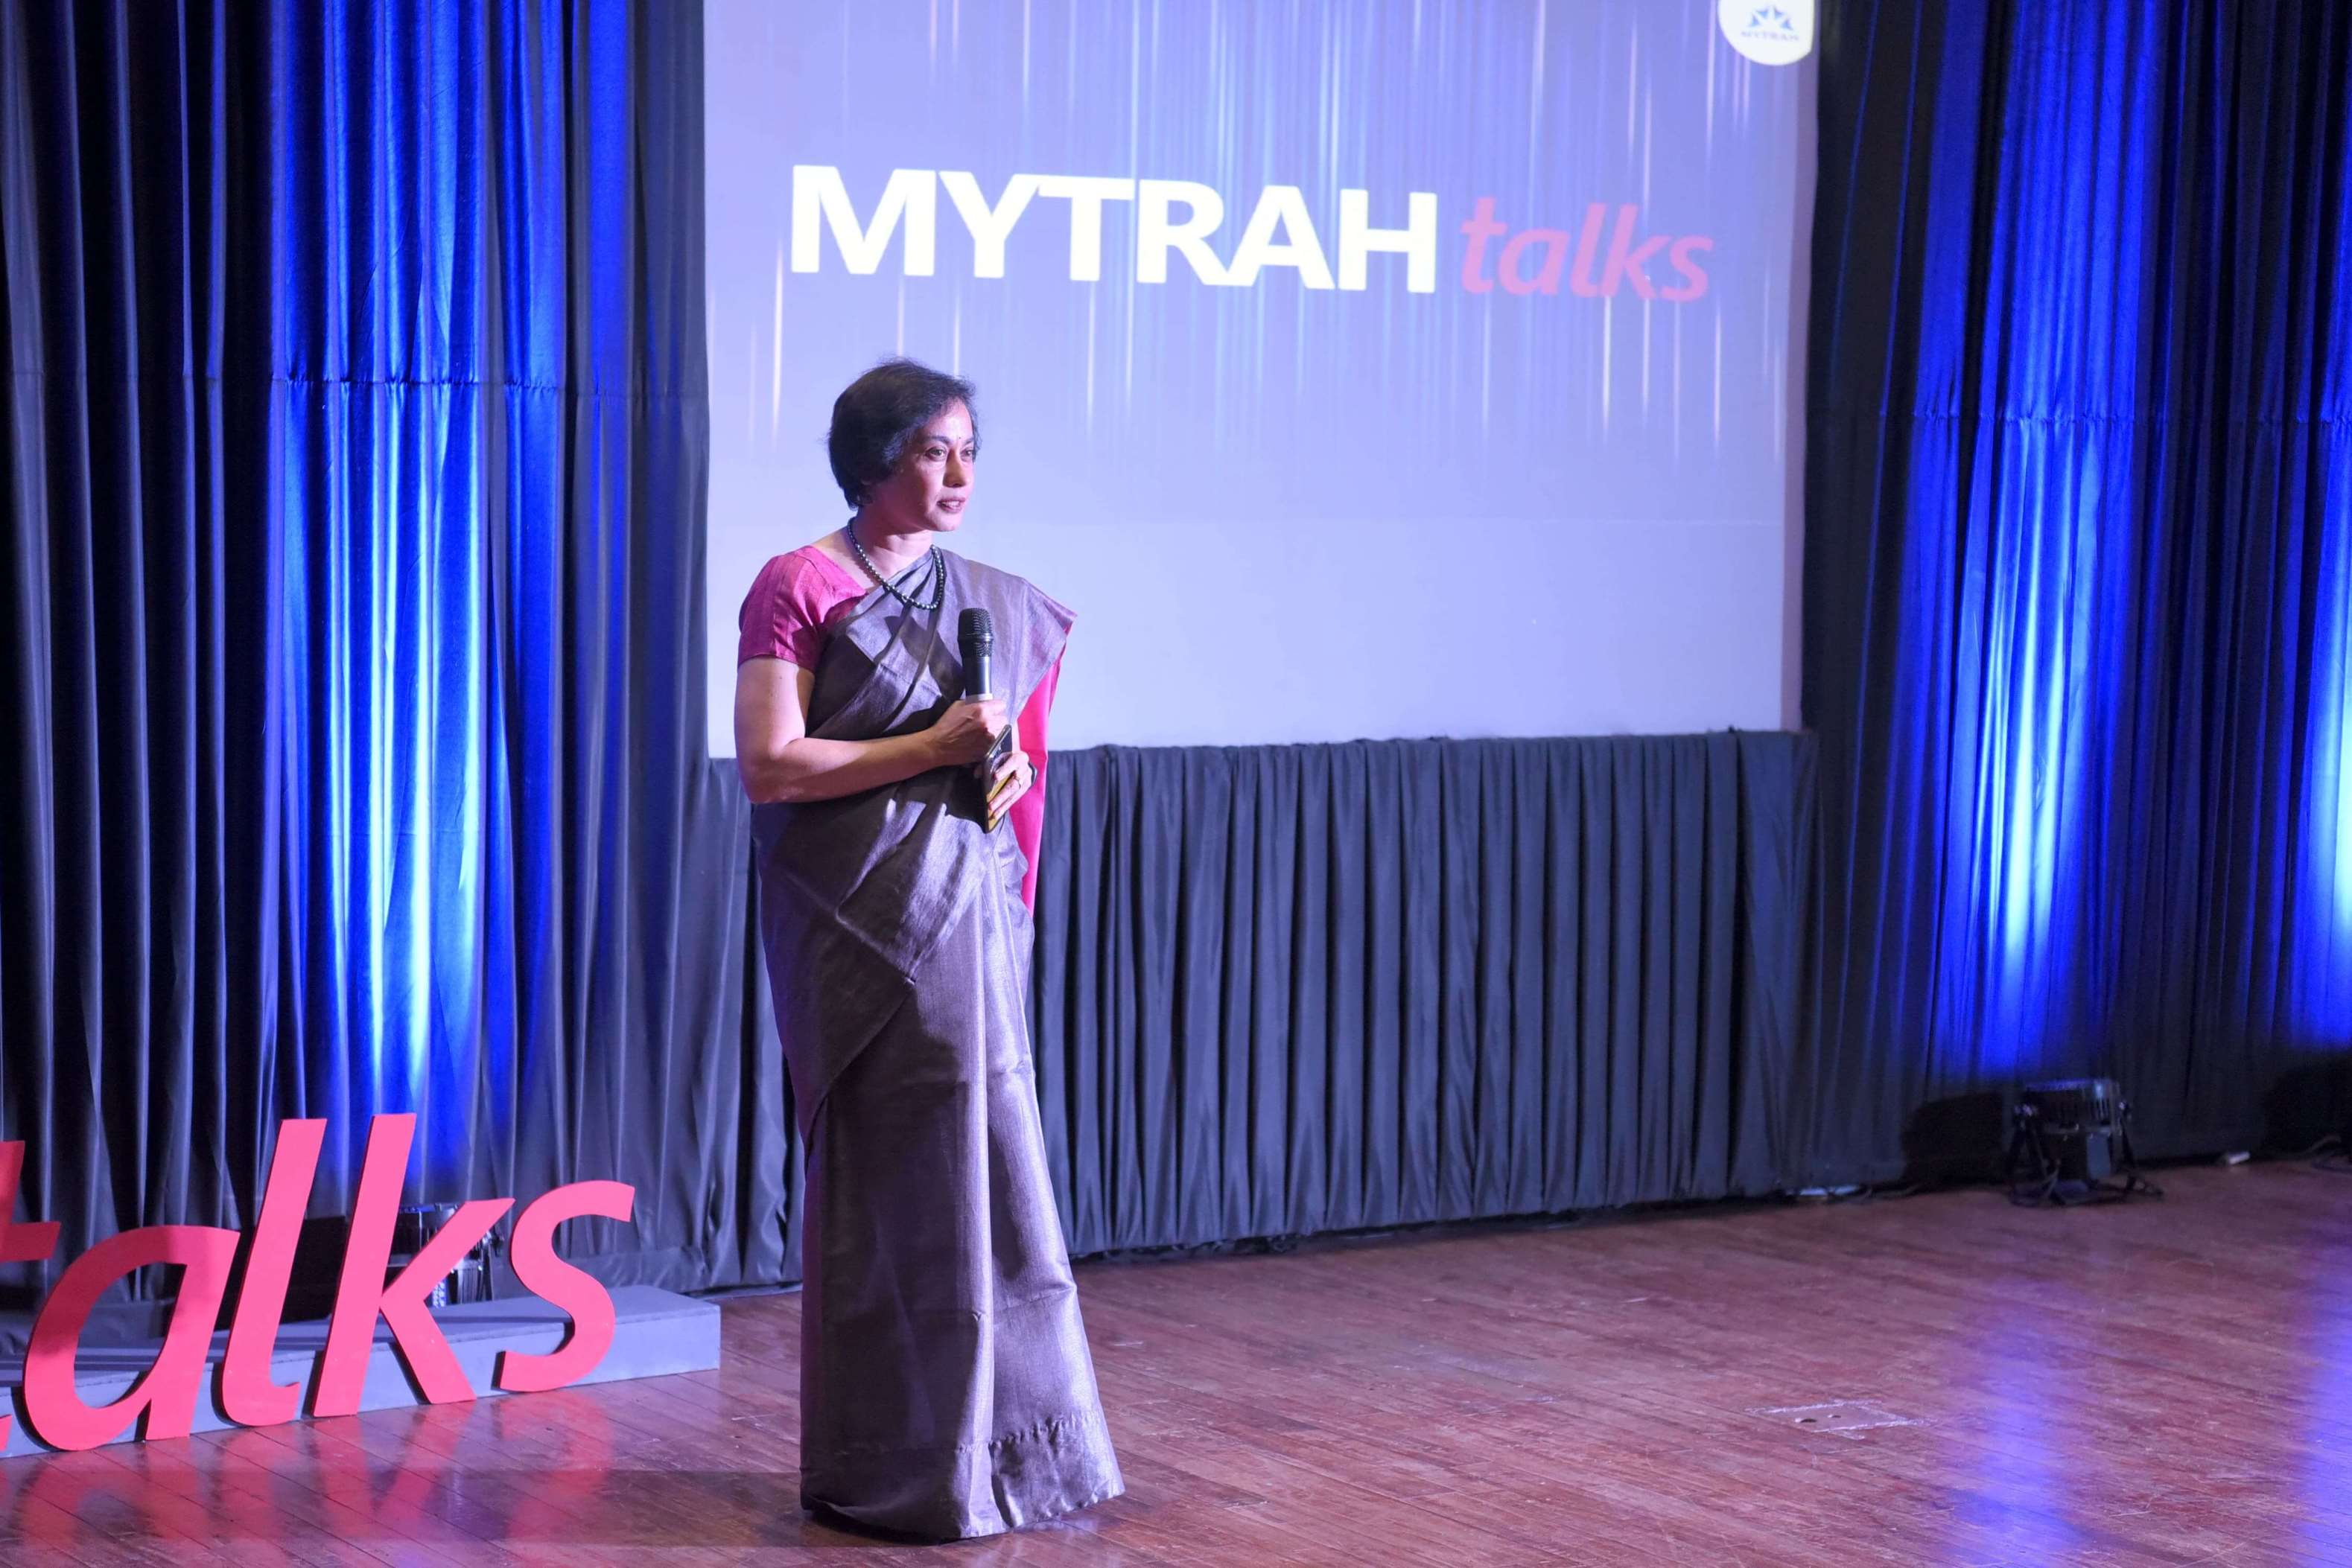 Mytrah Talks- Mr Sonam Wanchuk at SIIB